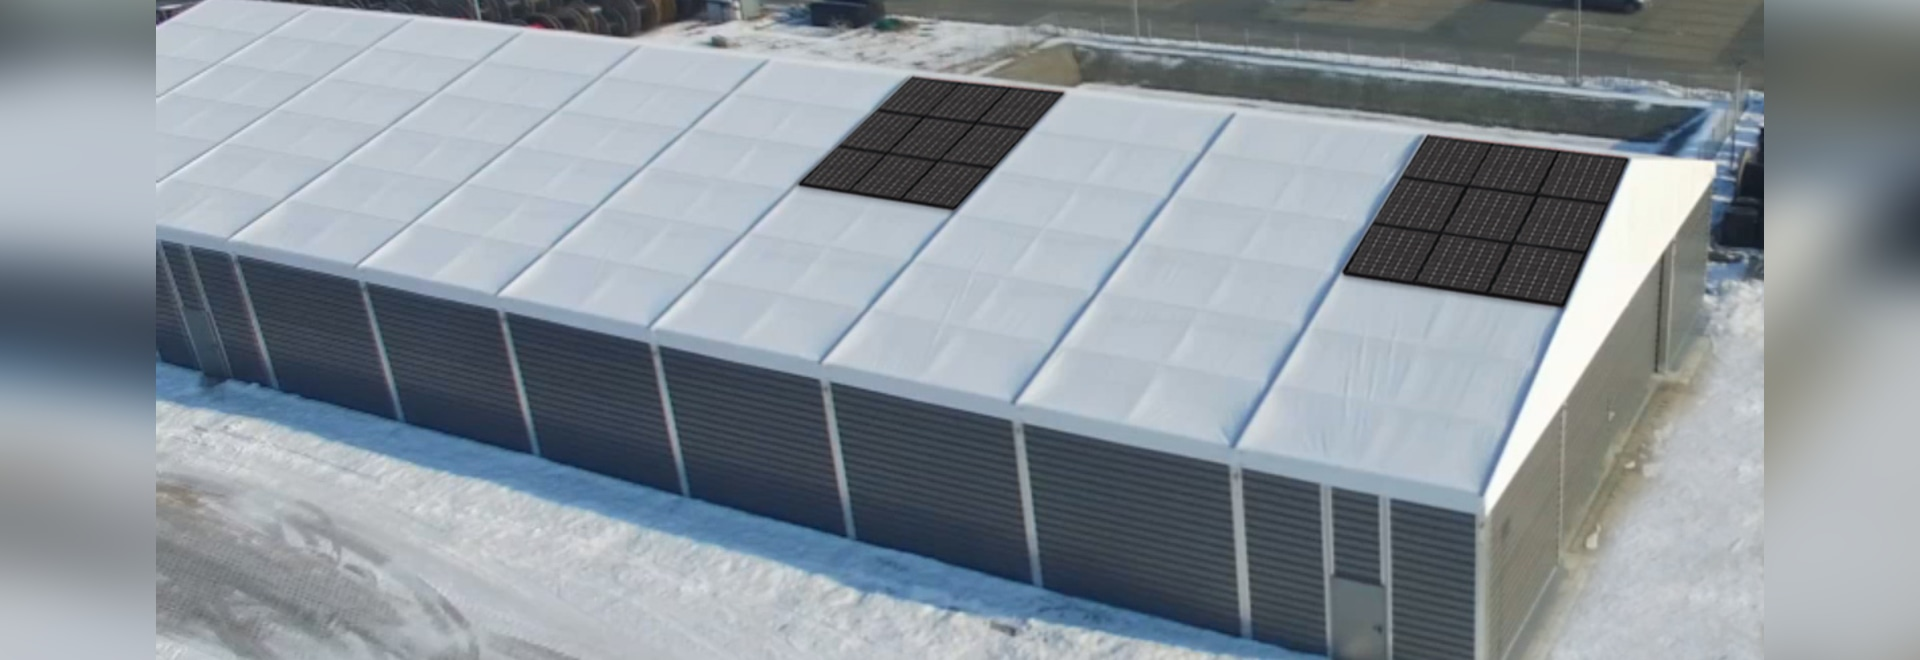 Temporary warehouse with photovoltaics